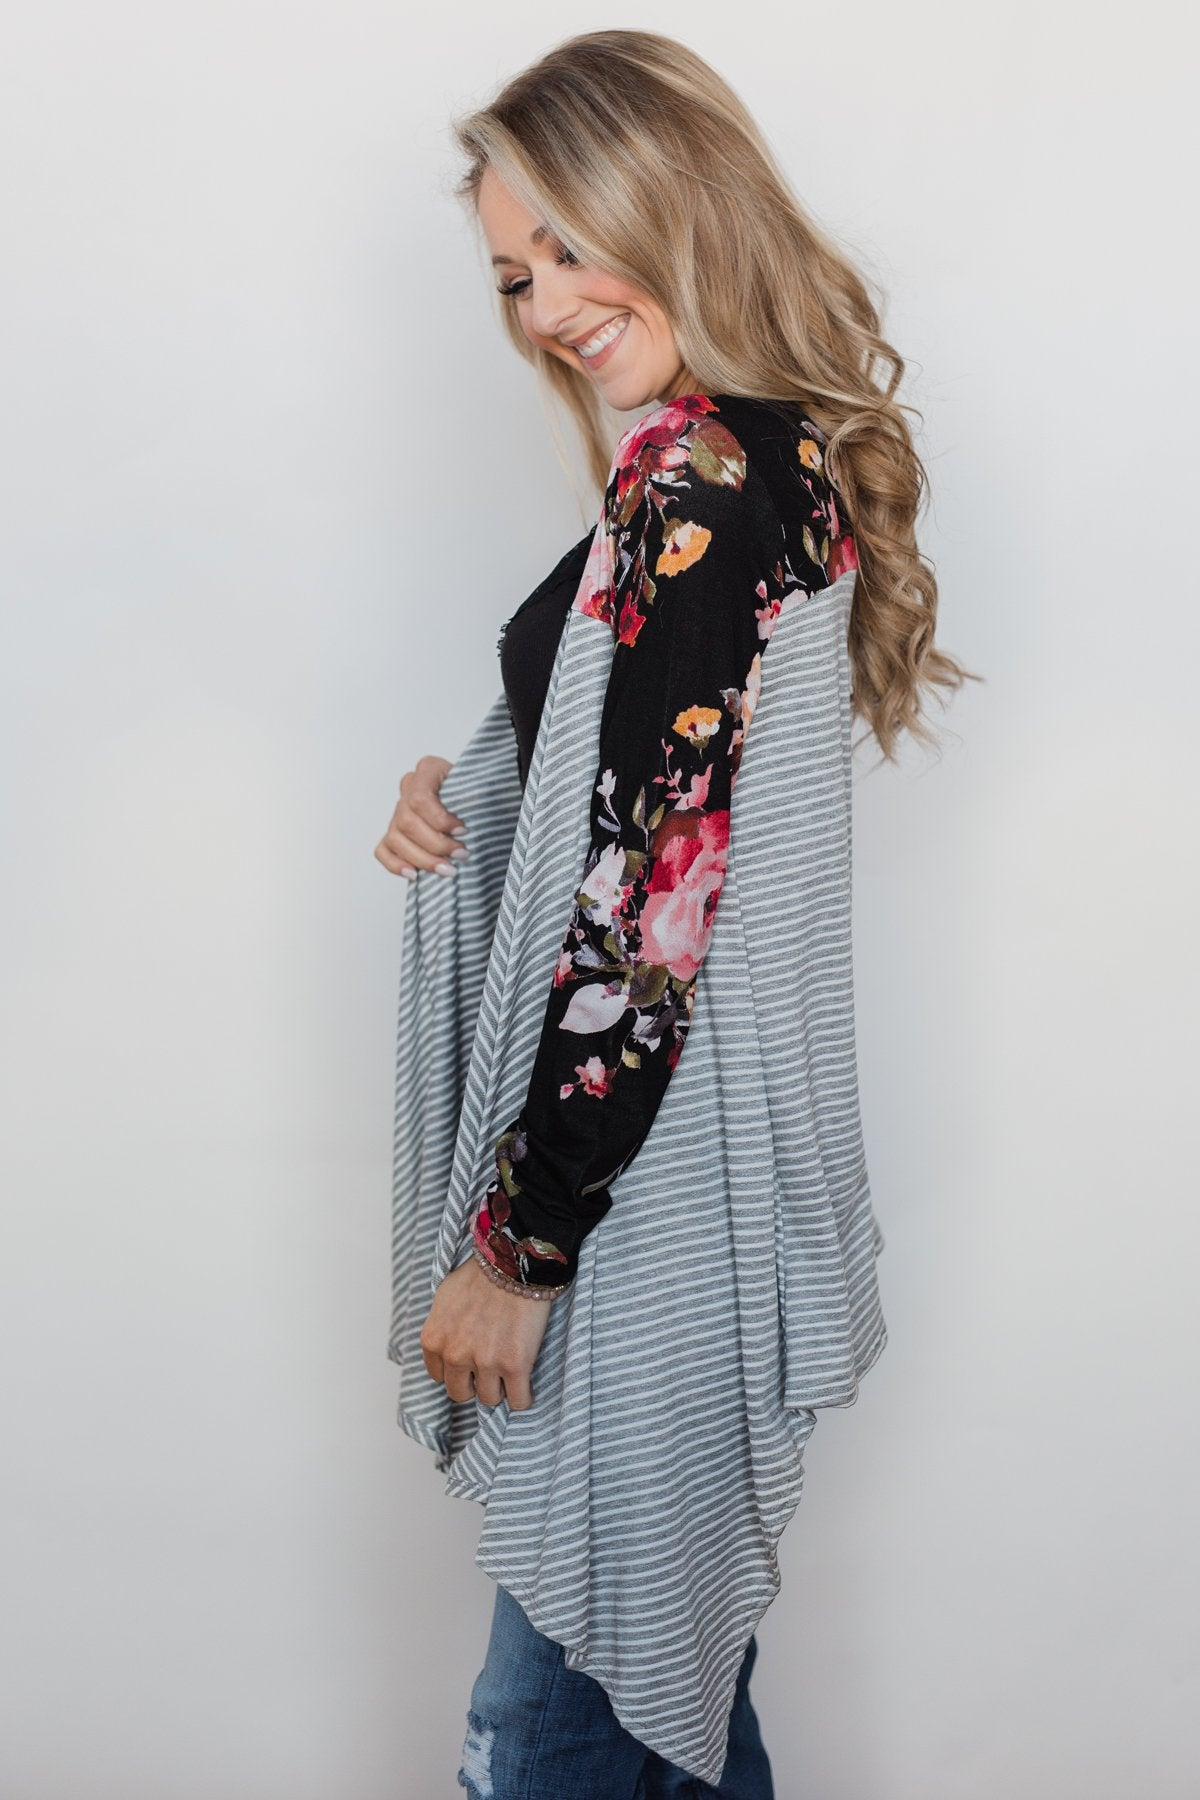 Easy Breeze Floral & Striped Cardigan- Black & Grey